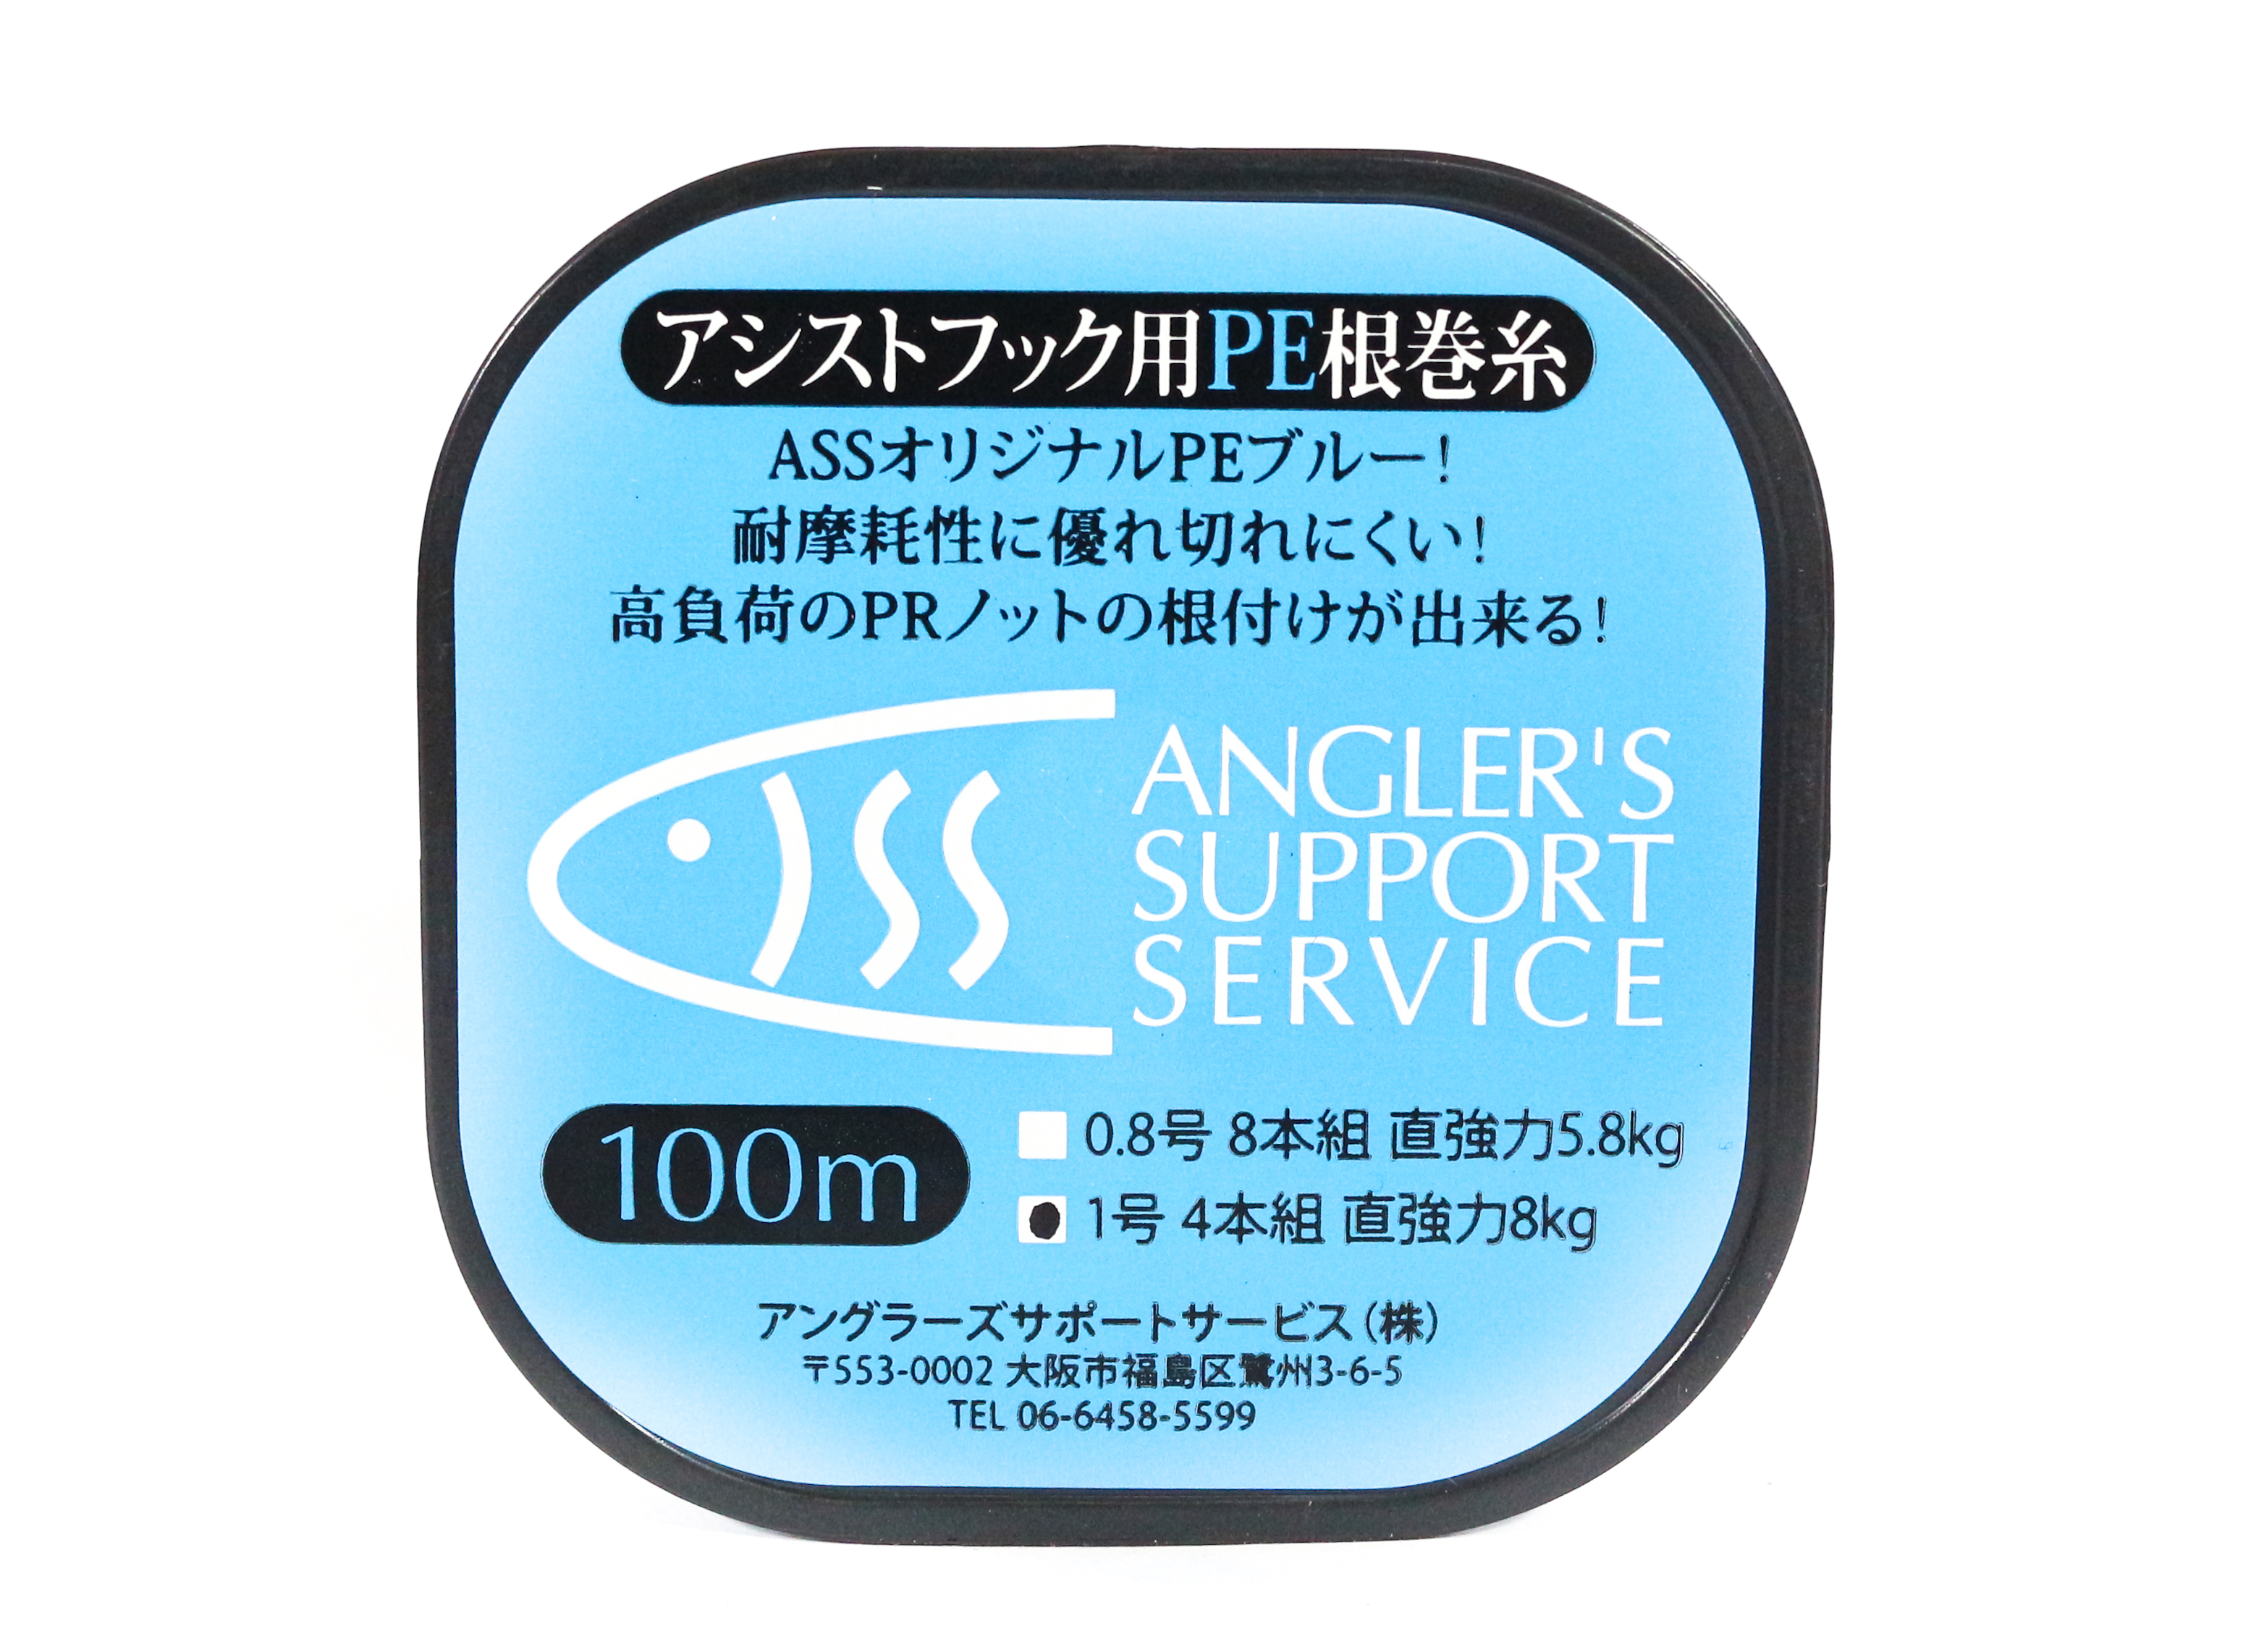 Sale Anglers Support Service Assist PE Nemaki-ito 1.0 (0190)